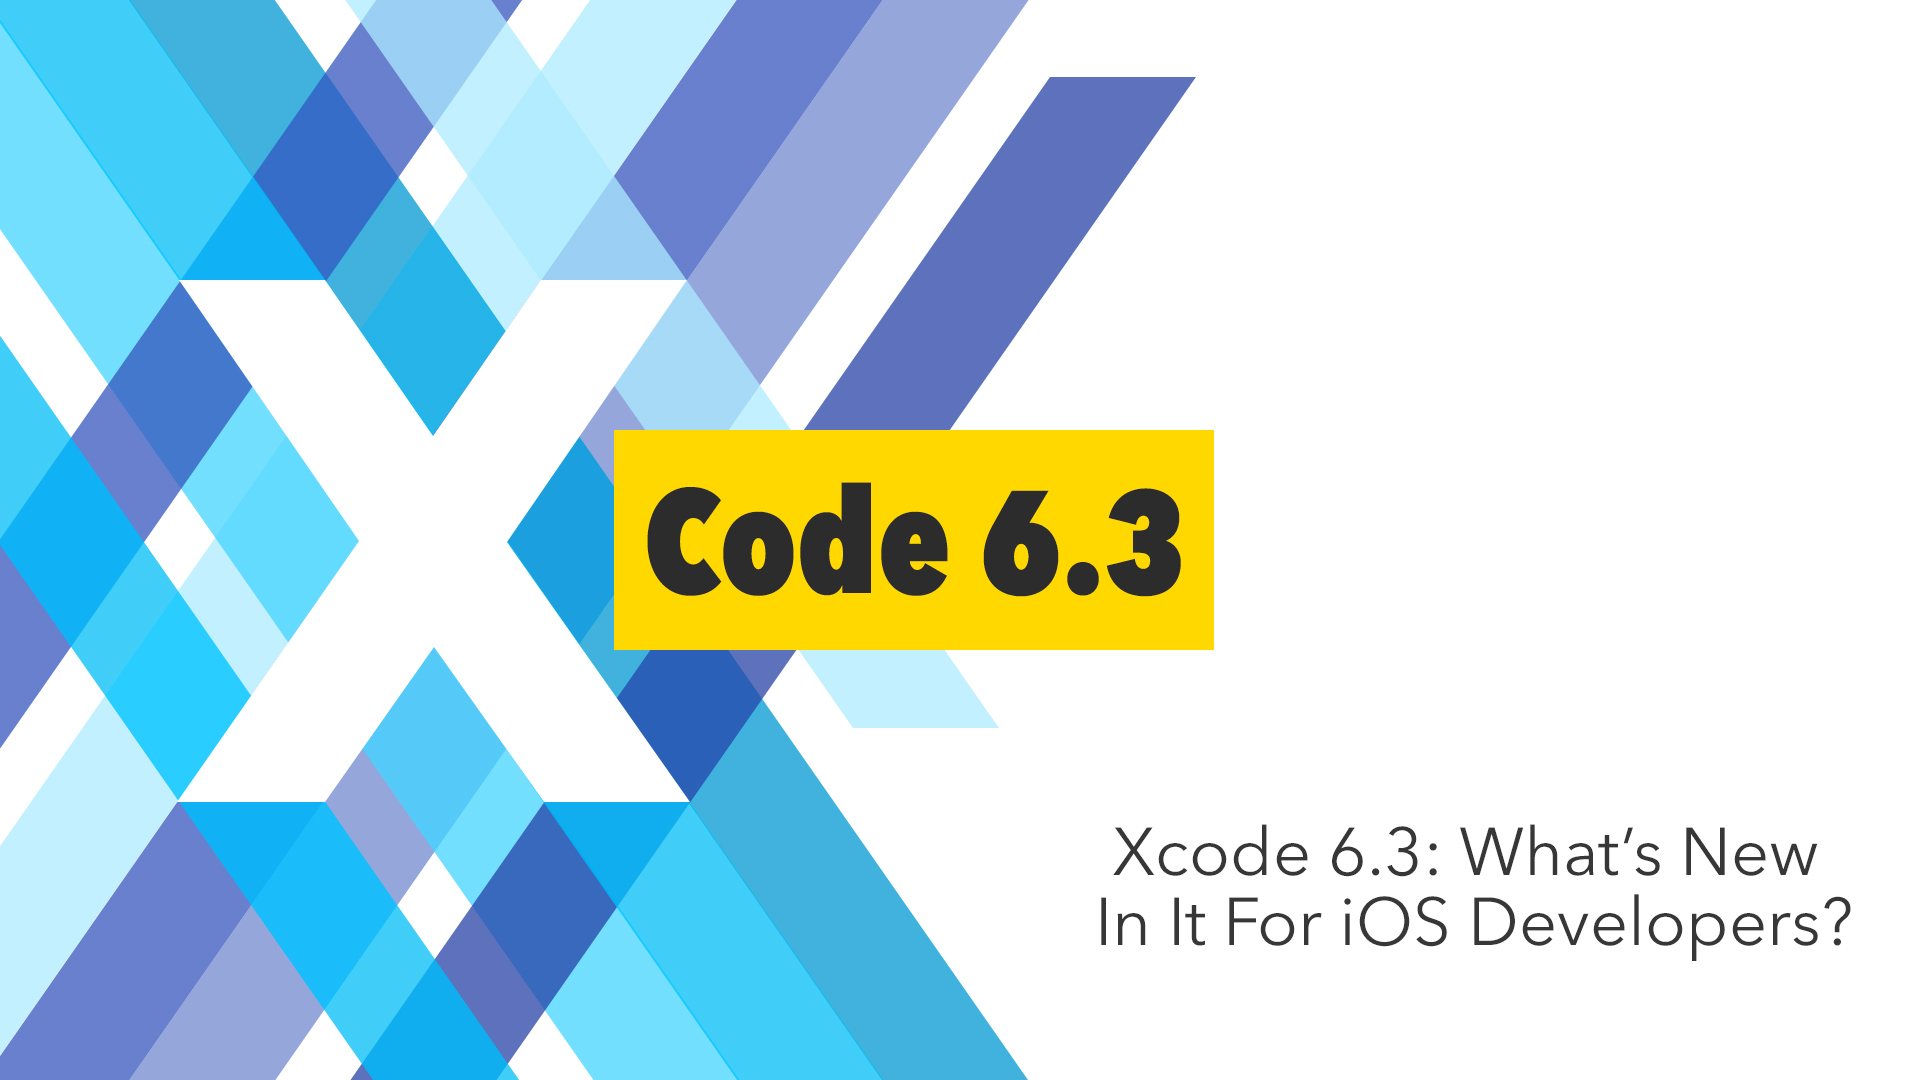 Xcode 6.3 features